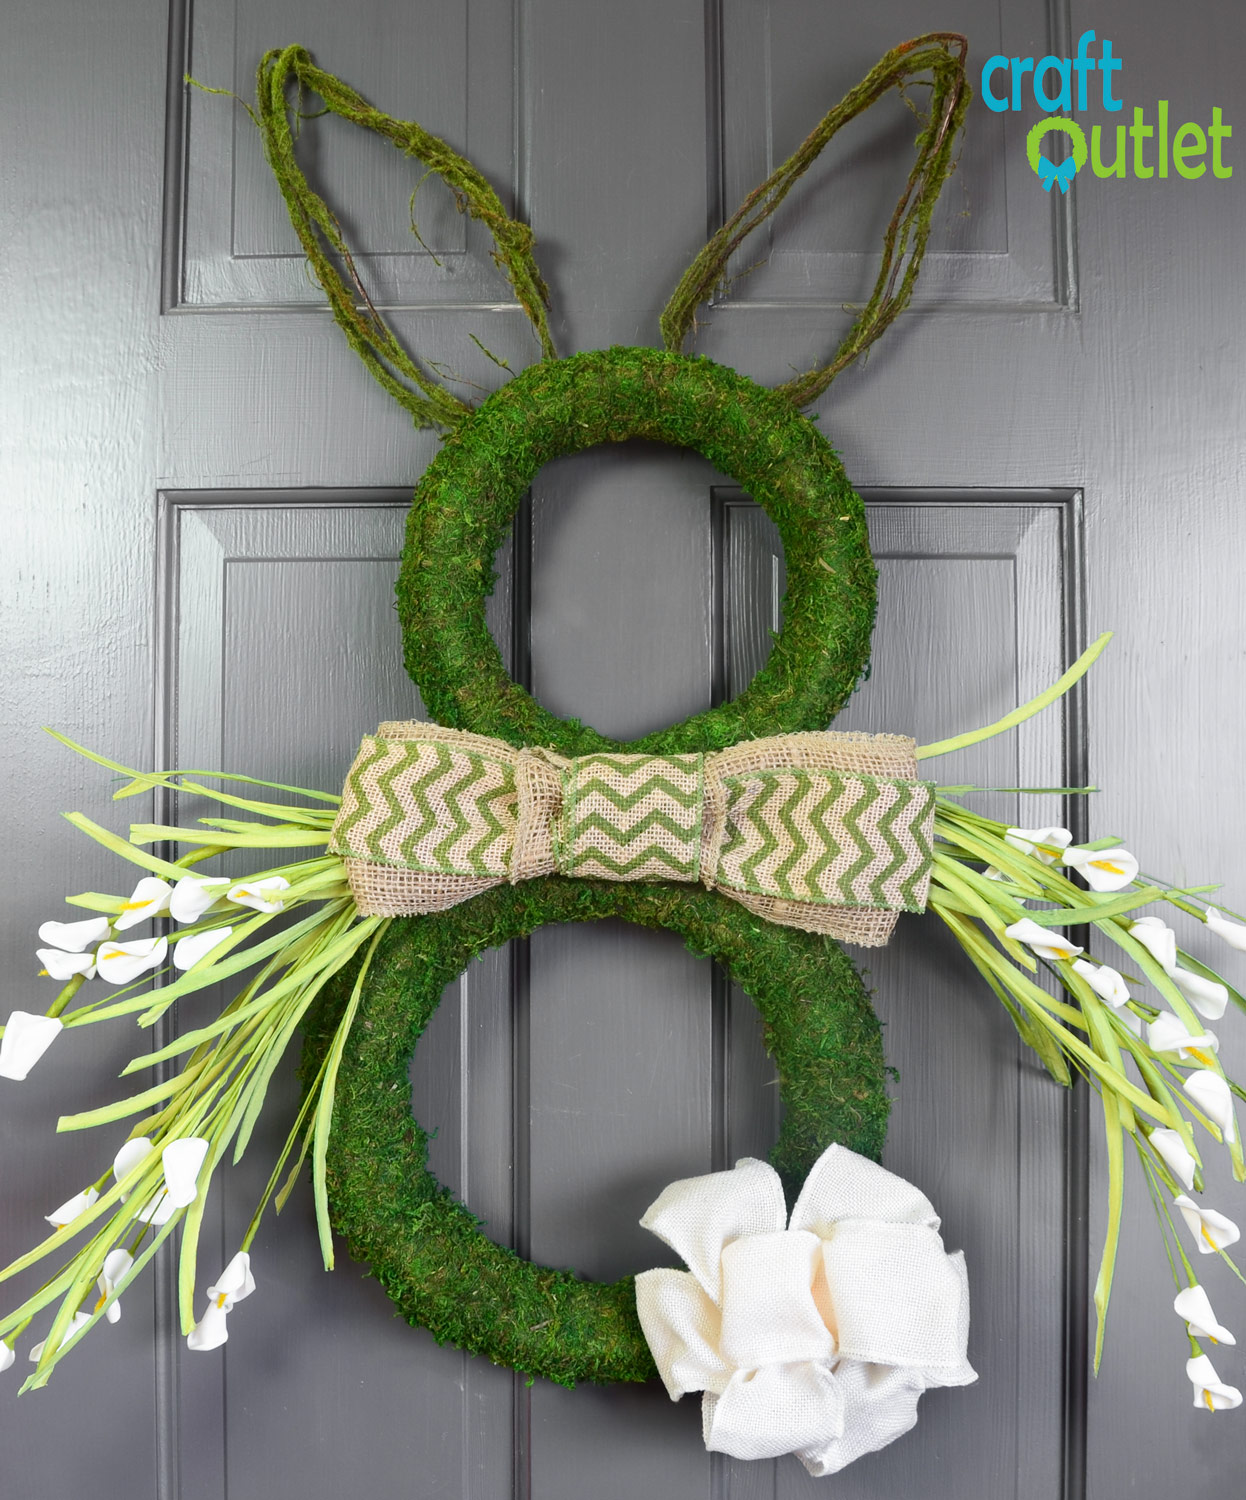 Moss Easter Bunny Wreath Craft Outlet Inspiration